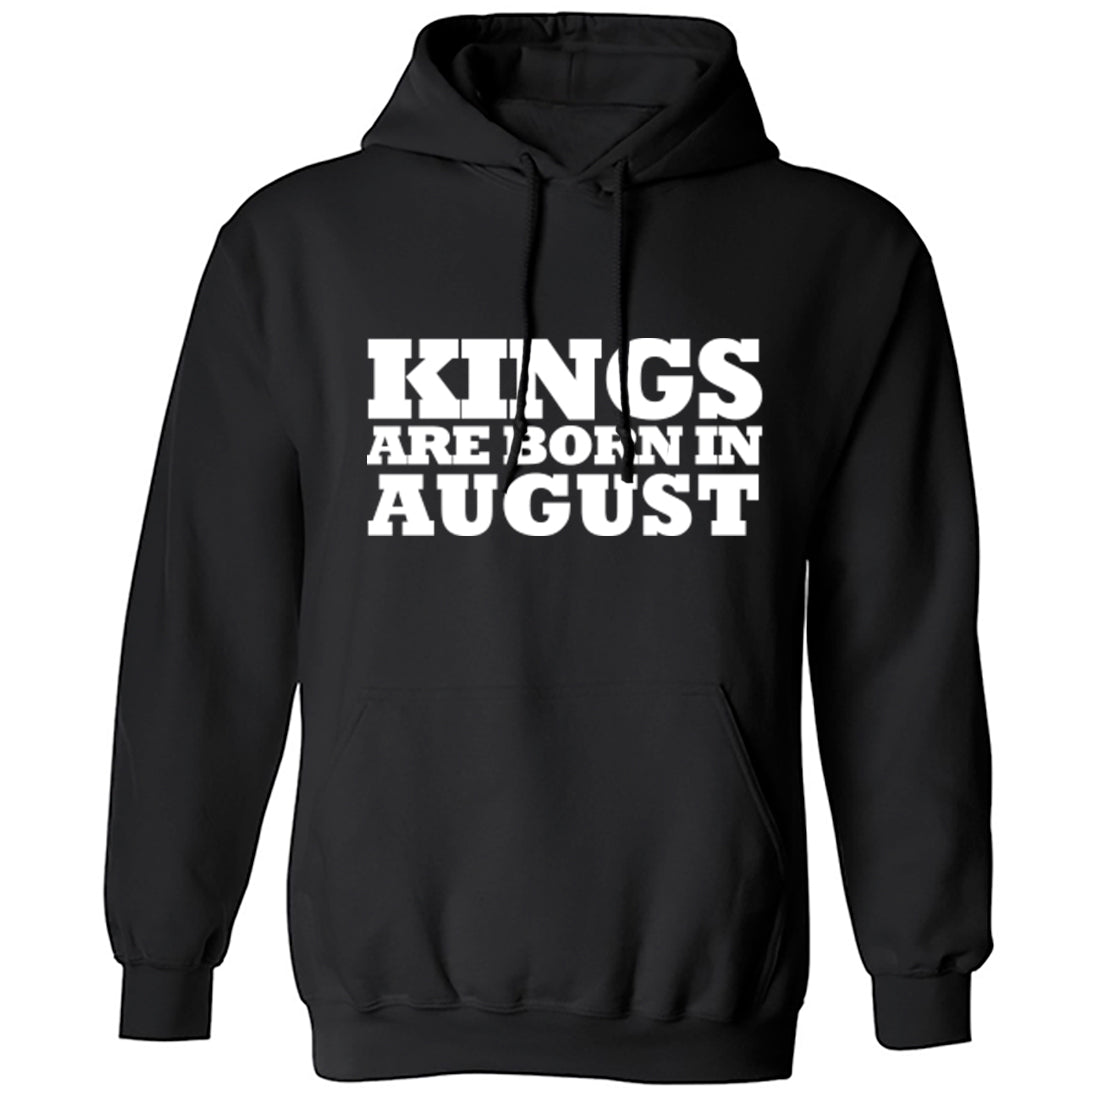 Kings Are Born In August Unisex Hoodie K1691 - Illustrated Identity Ltd.